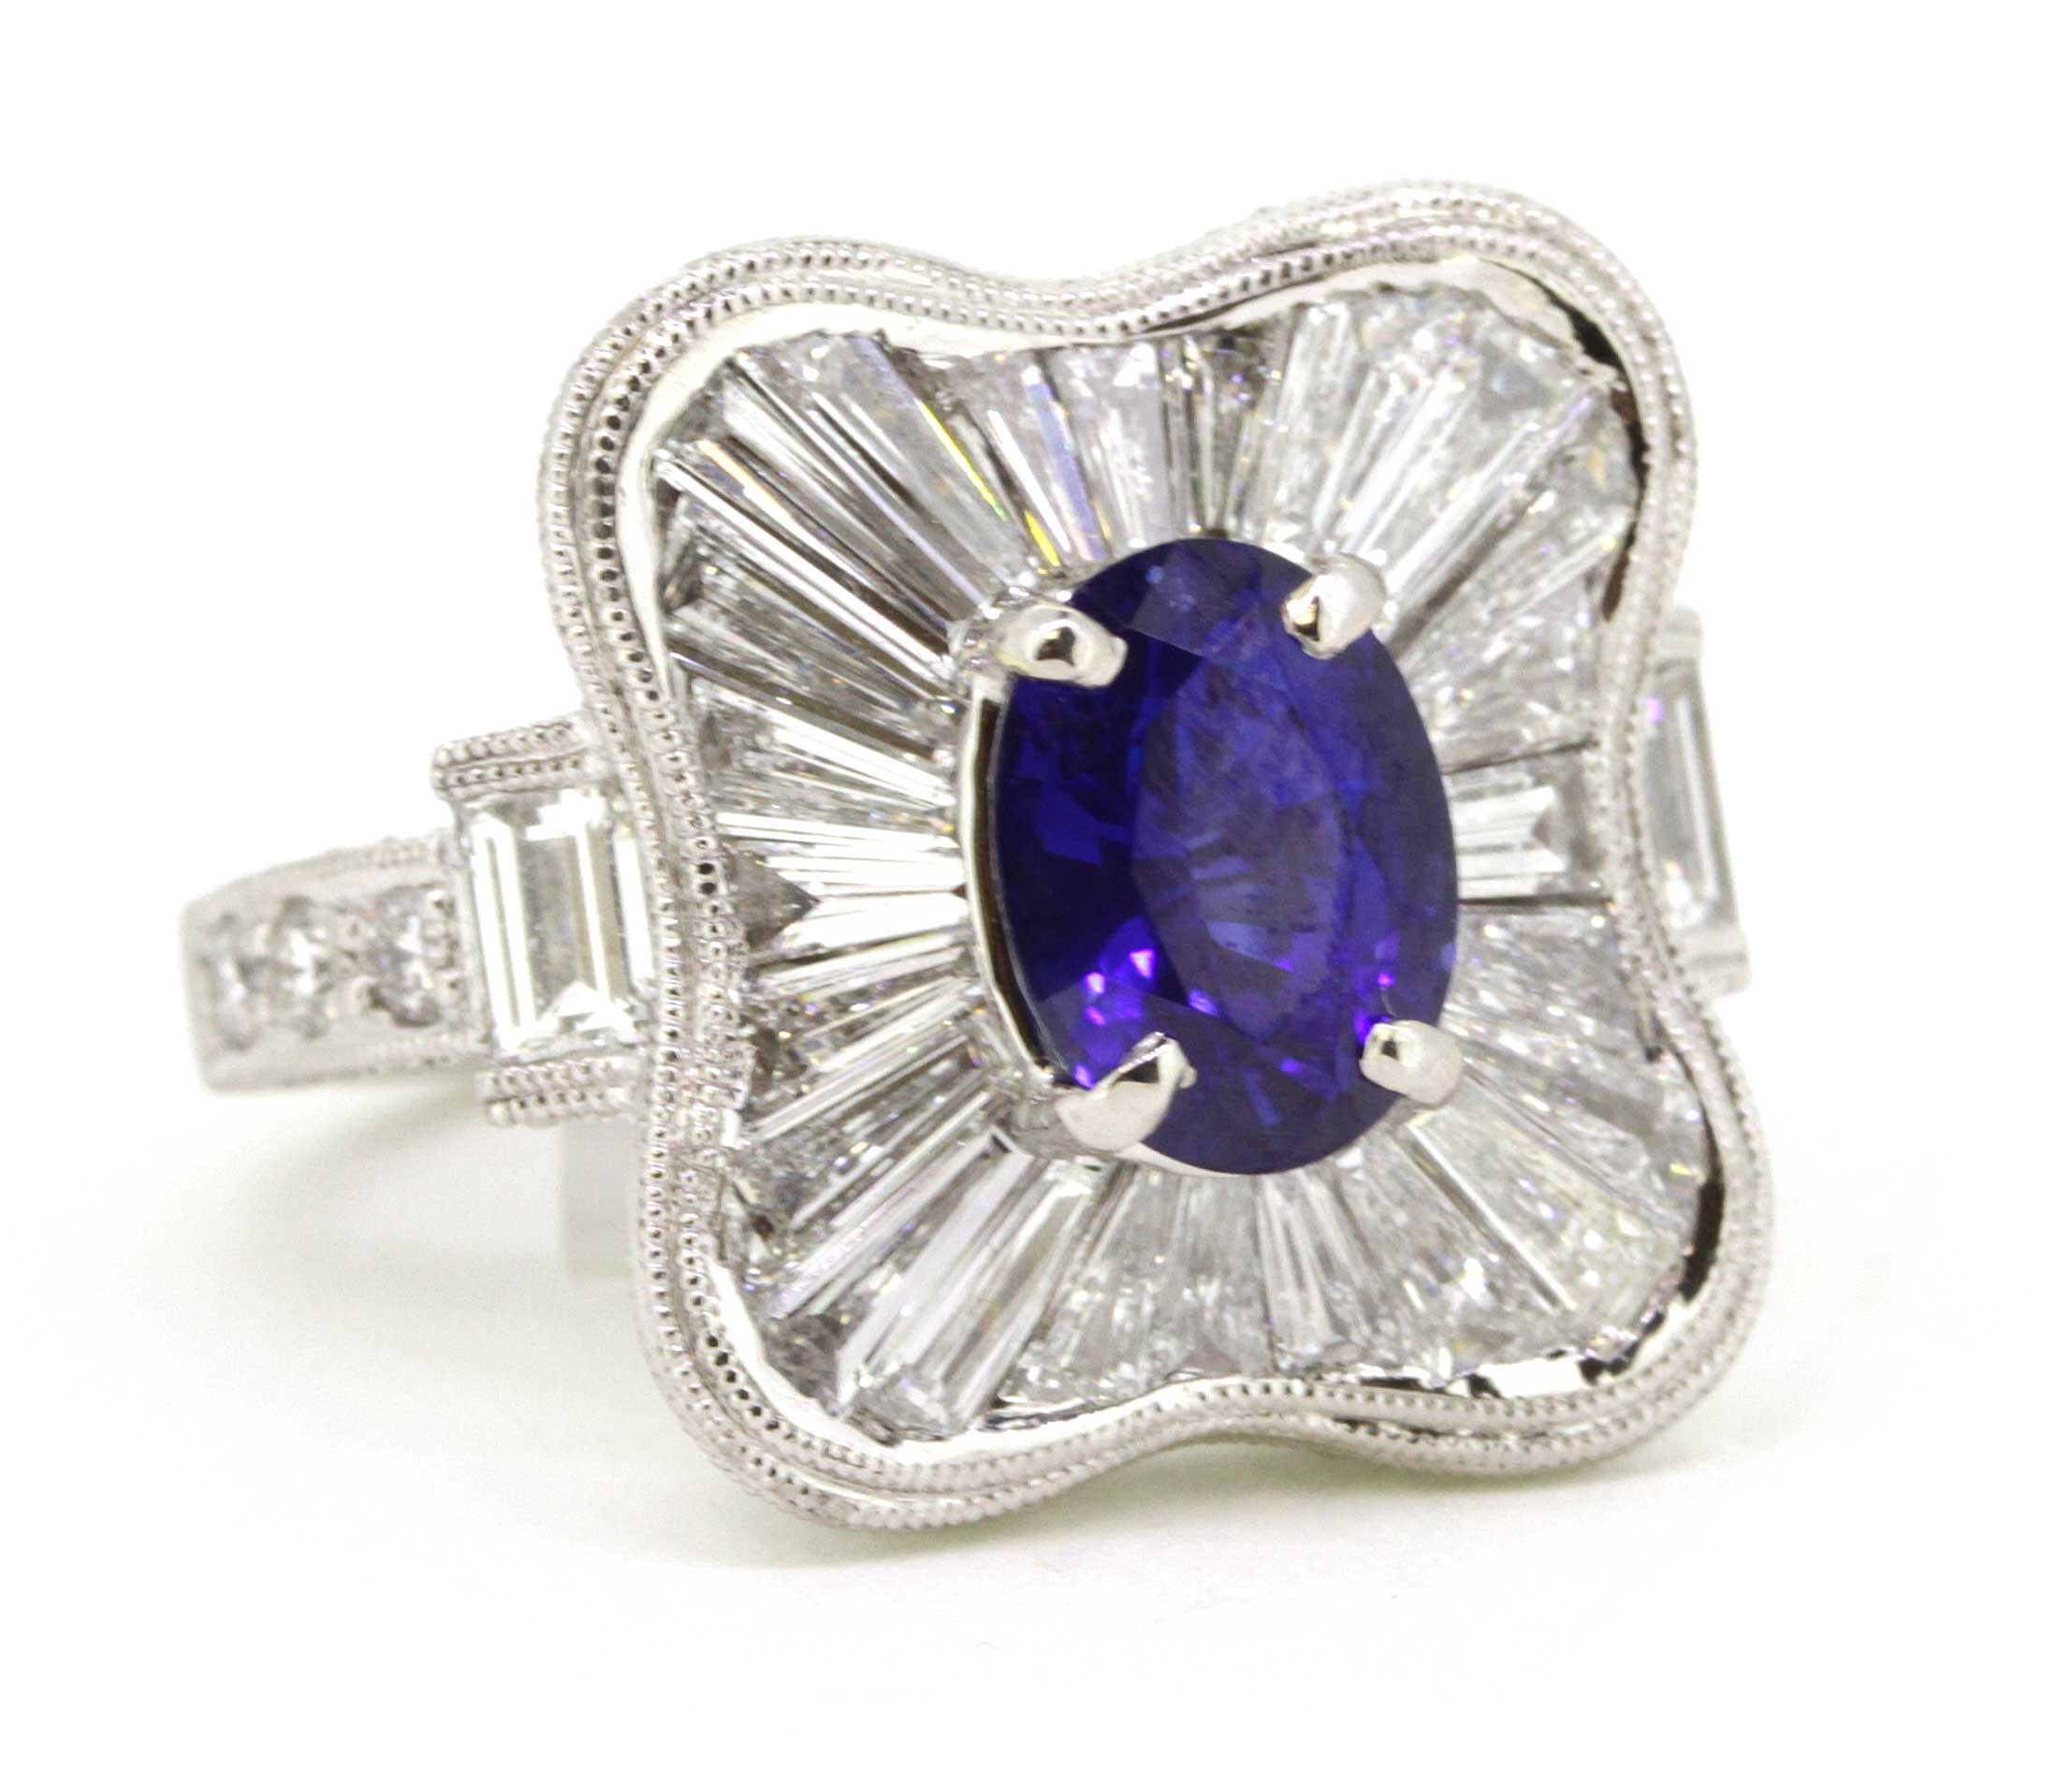 Estate ring in platinum with sapphire center and diamond halo